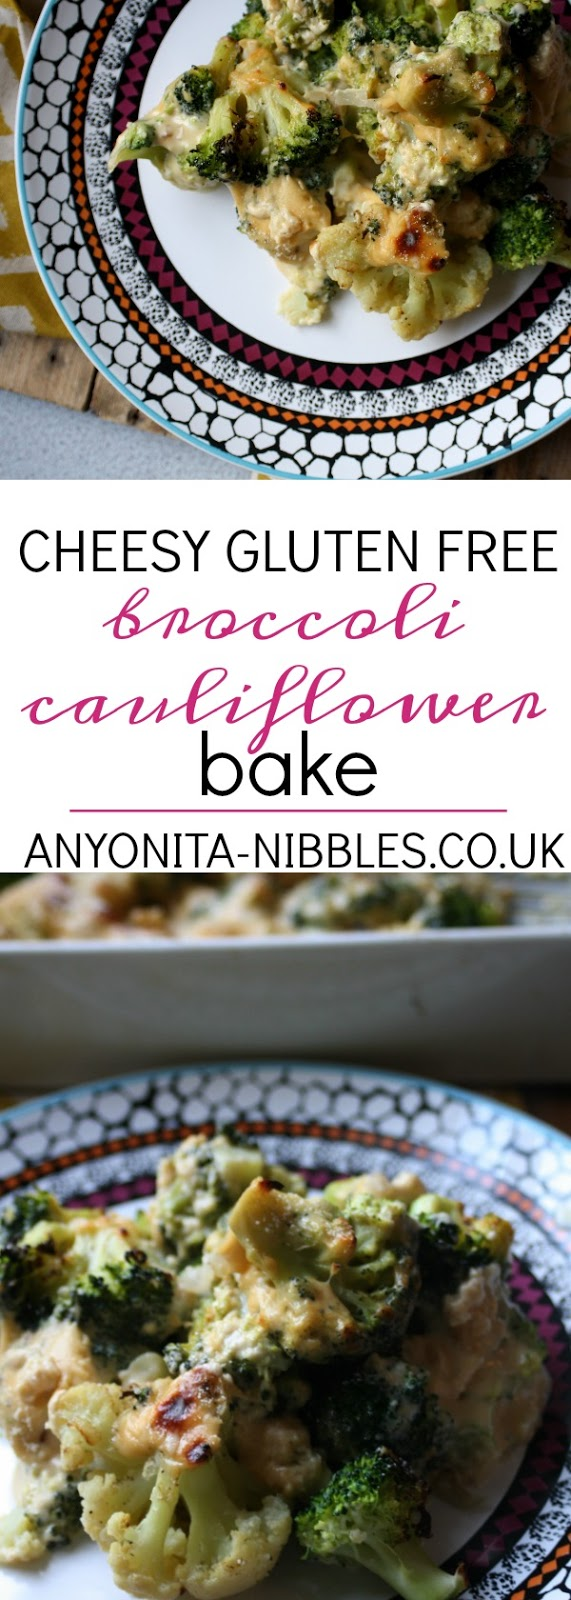 Gluten Free Broccoli Cauliflower Cheese Bake by Anyonita Nibbles